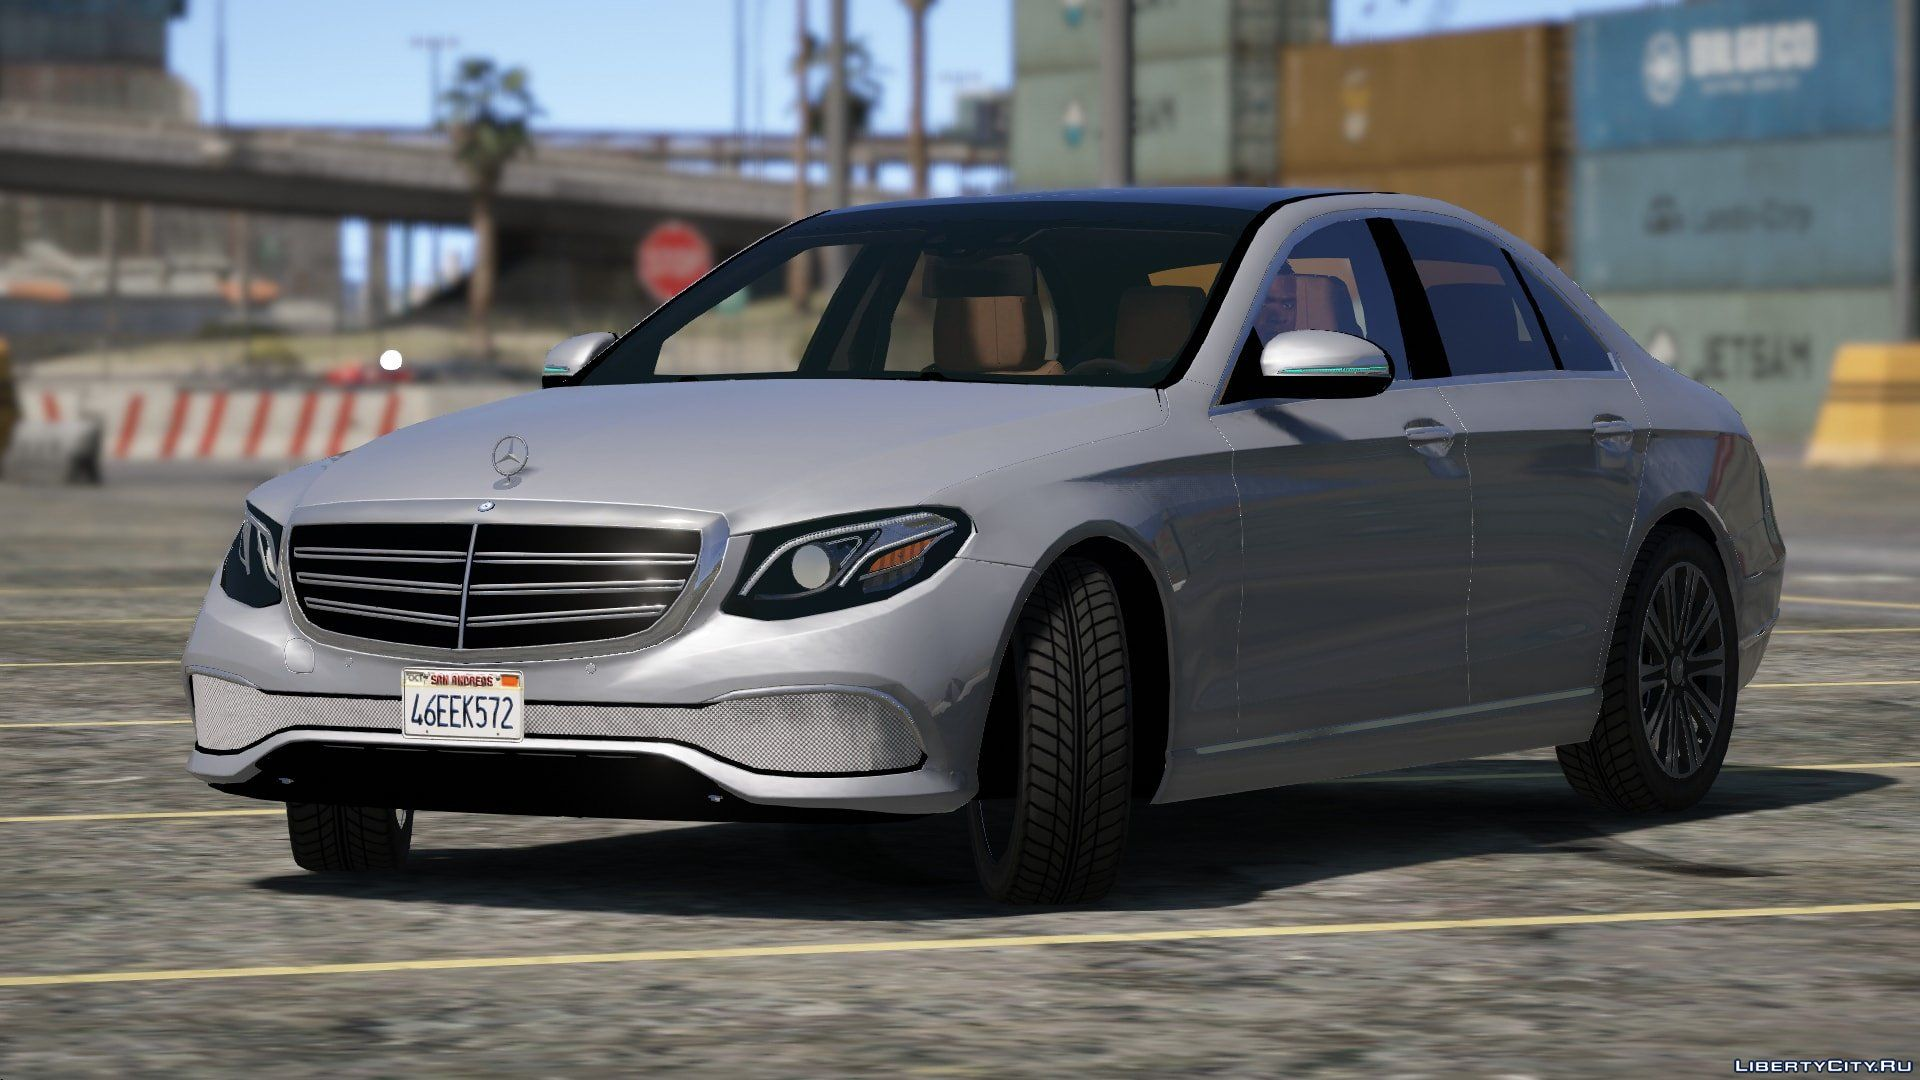 Mercedes benz e class 2015 1 0 for gta 5 for Mercedes benz gta